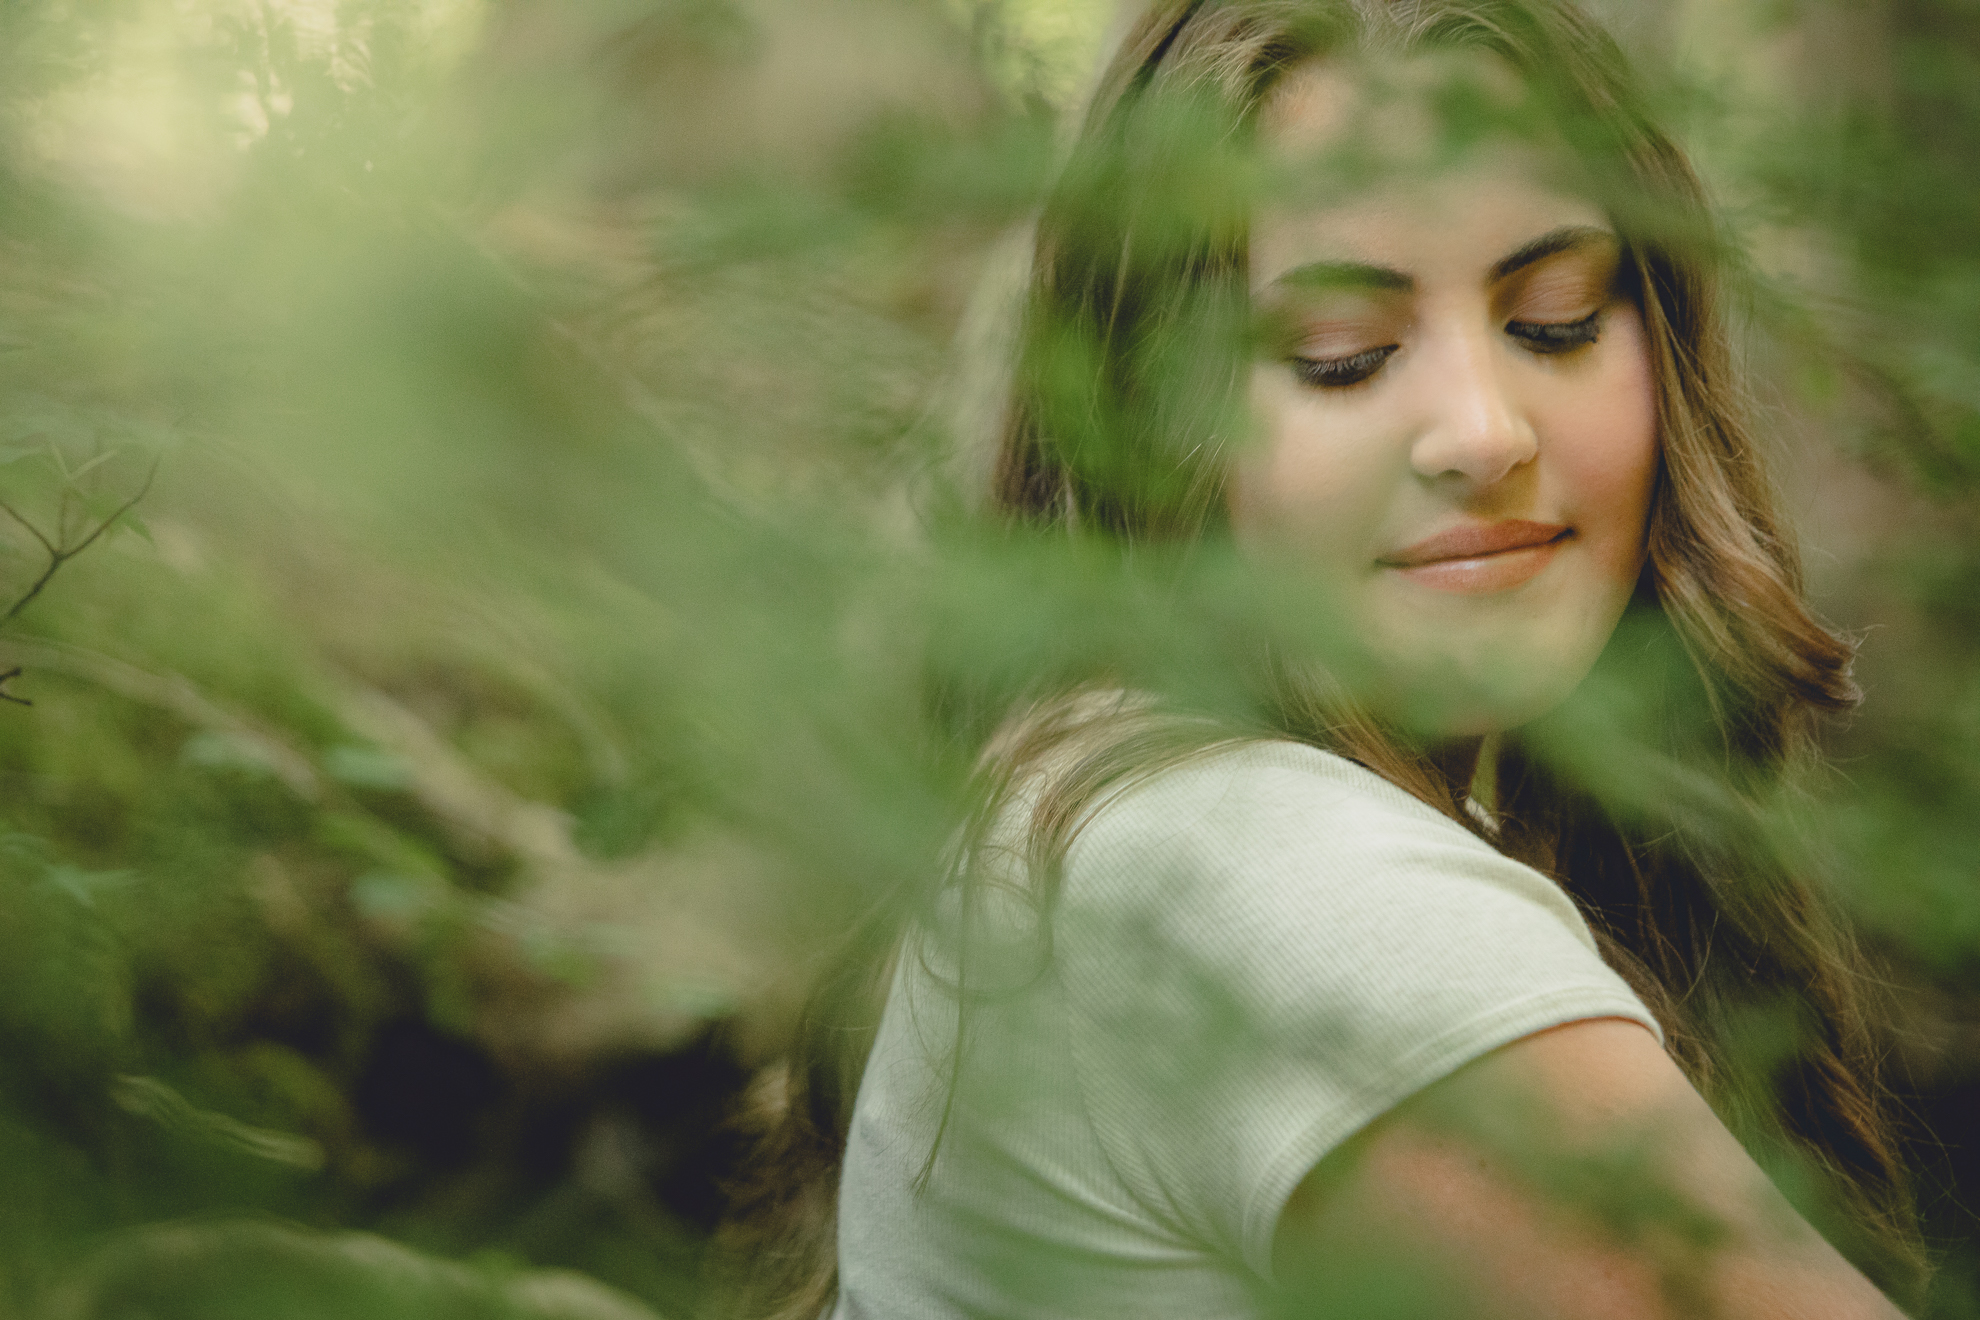 Tessa looks over shoulder in woods during senior portrait photography session in Long Point State Park in WNY